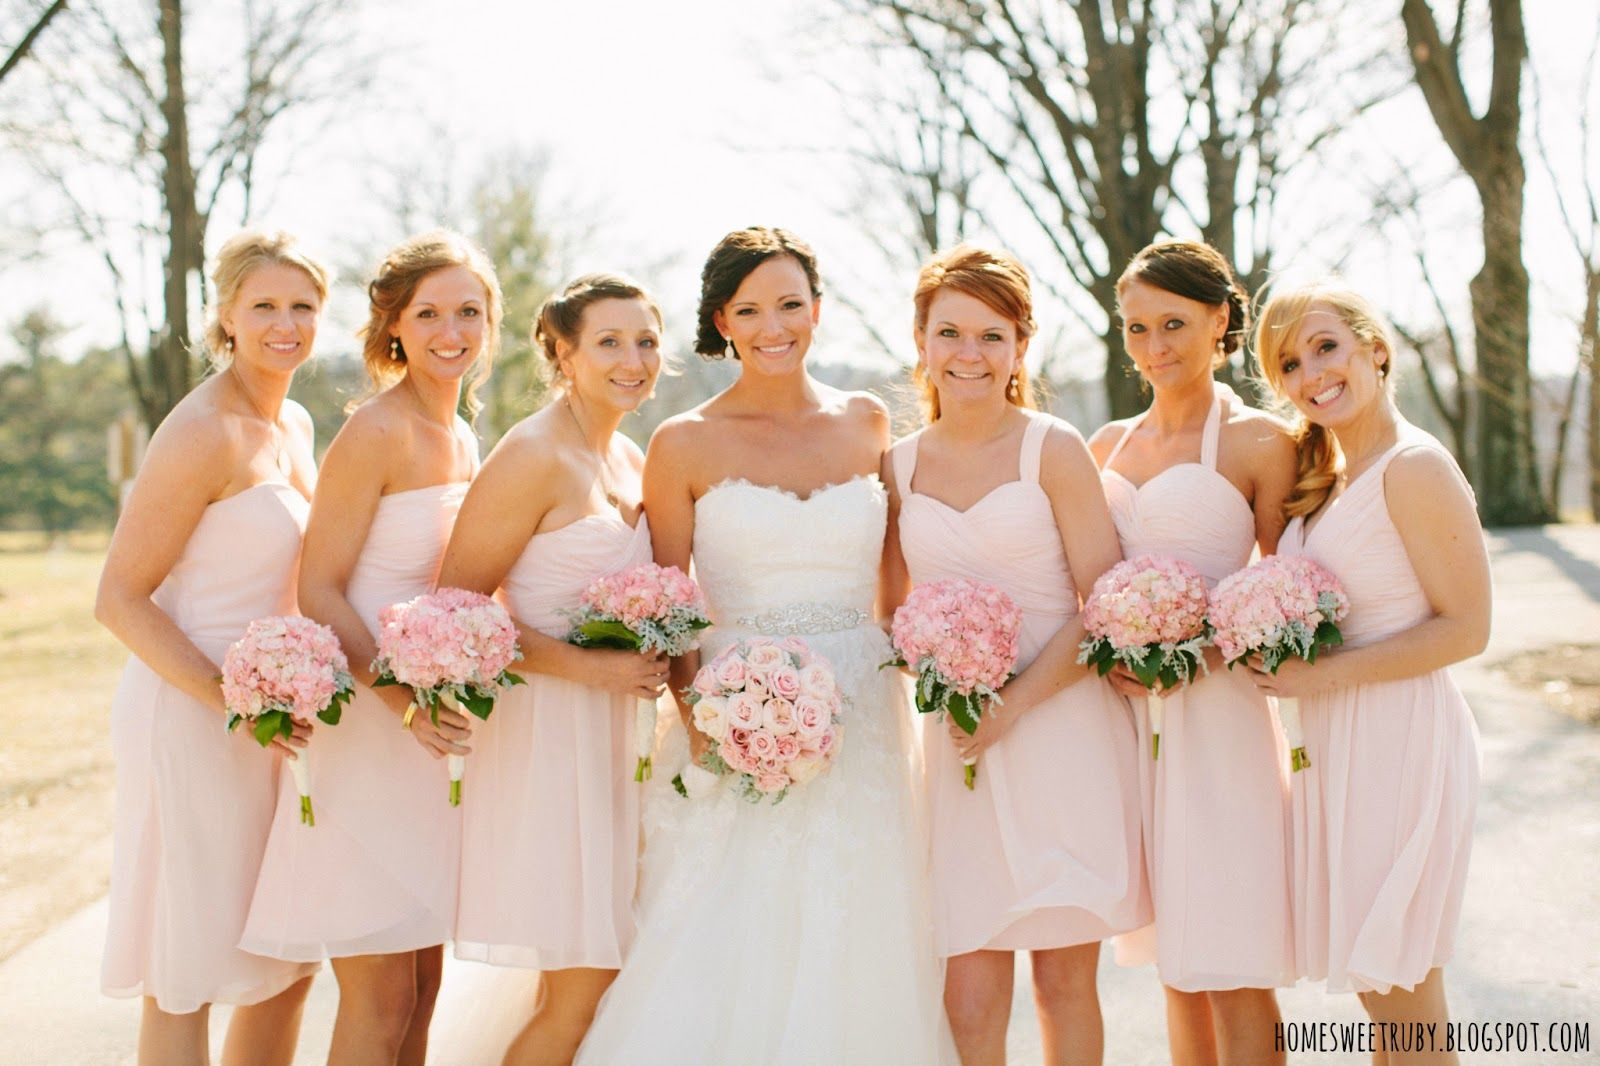 Bill levkoff chiffon bridesmaids dresses each a different style bill levkoff chiffon bridesmaids dresses each a different style hydrangea blush pink ombrellifo Choice Image